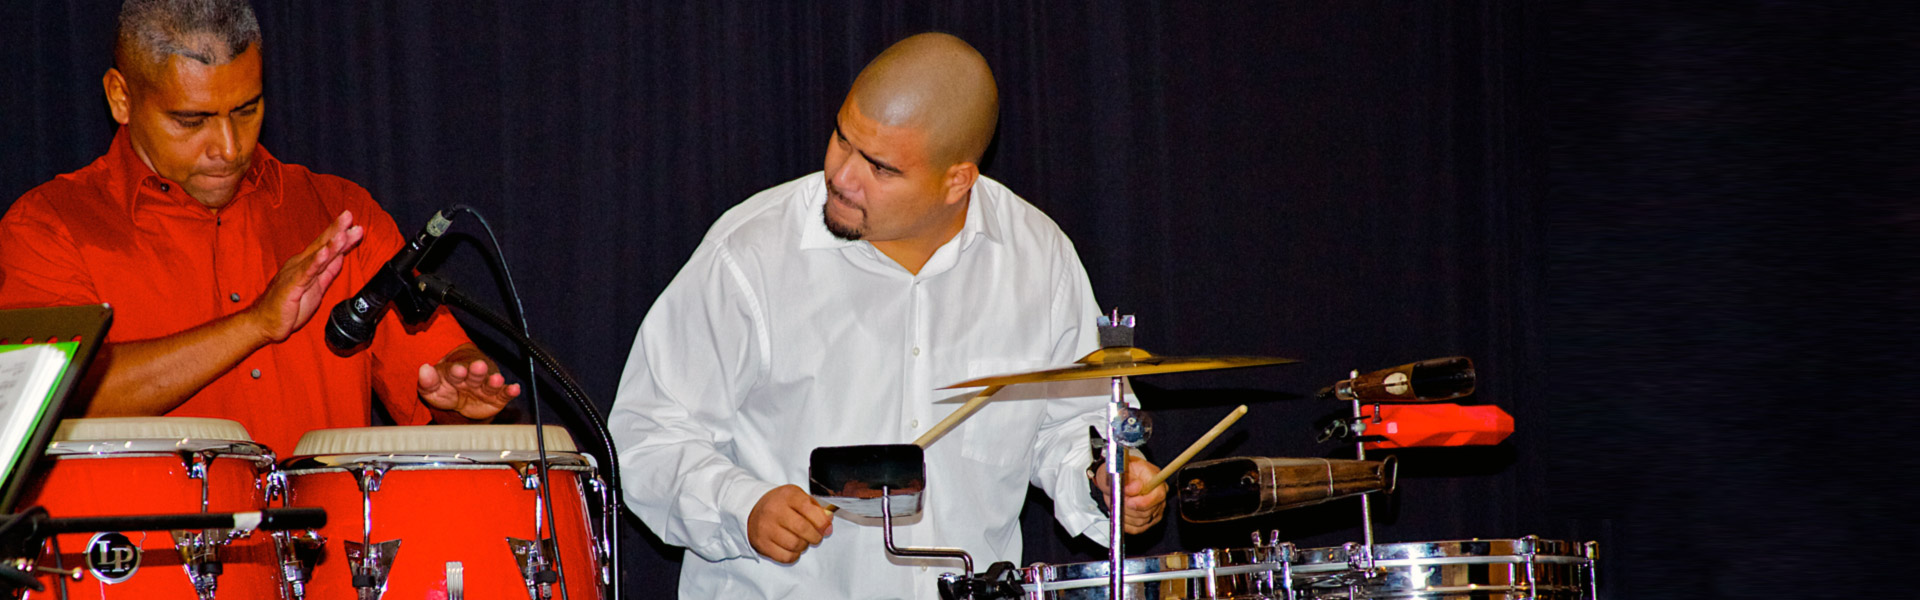 Auditions for Latin Jazz big band